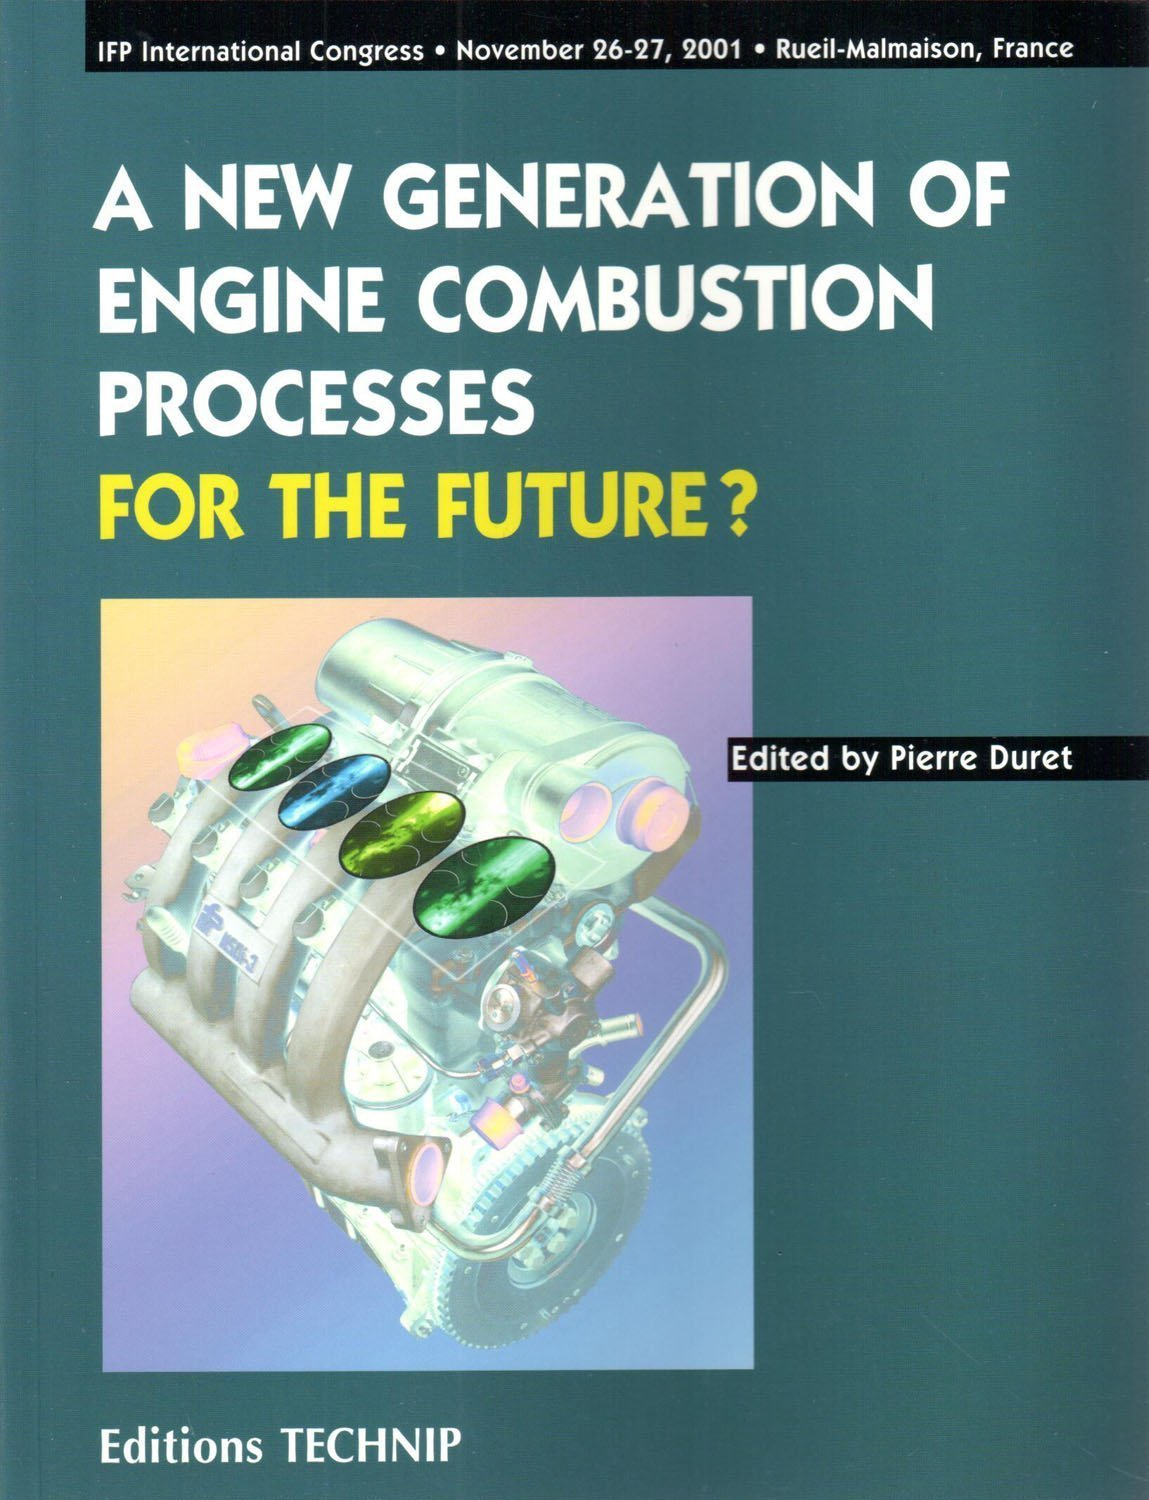 A NEW GENERATION OF ENGINE COMBUSTION PROCESSES - FOR THE FUTURE ?